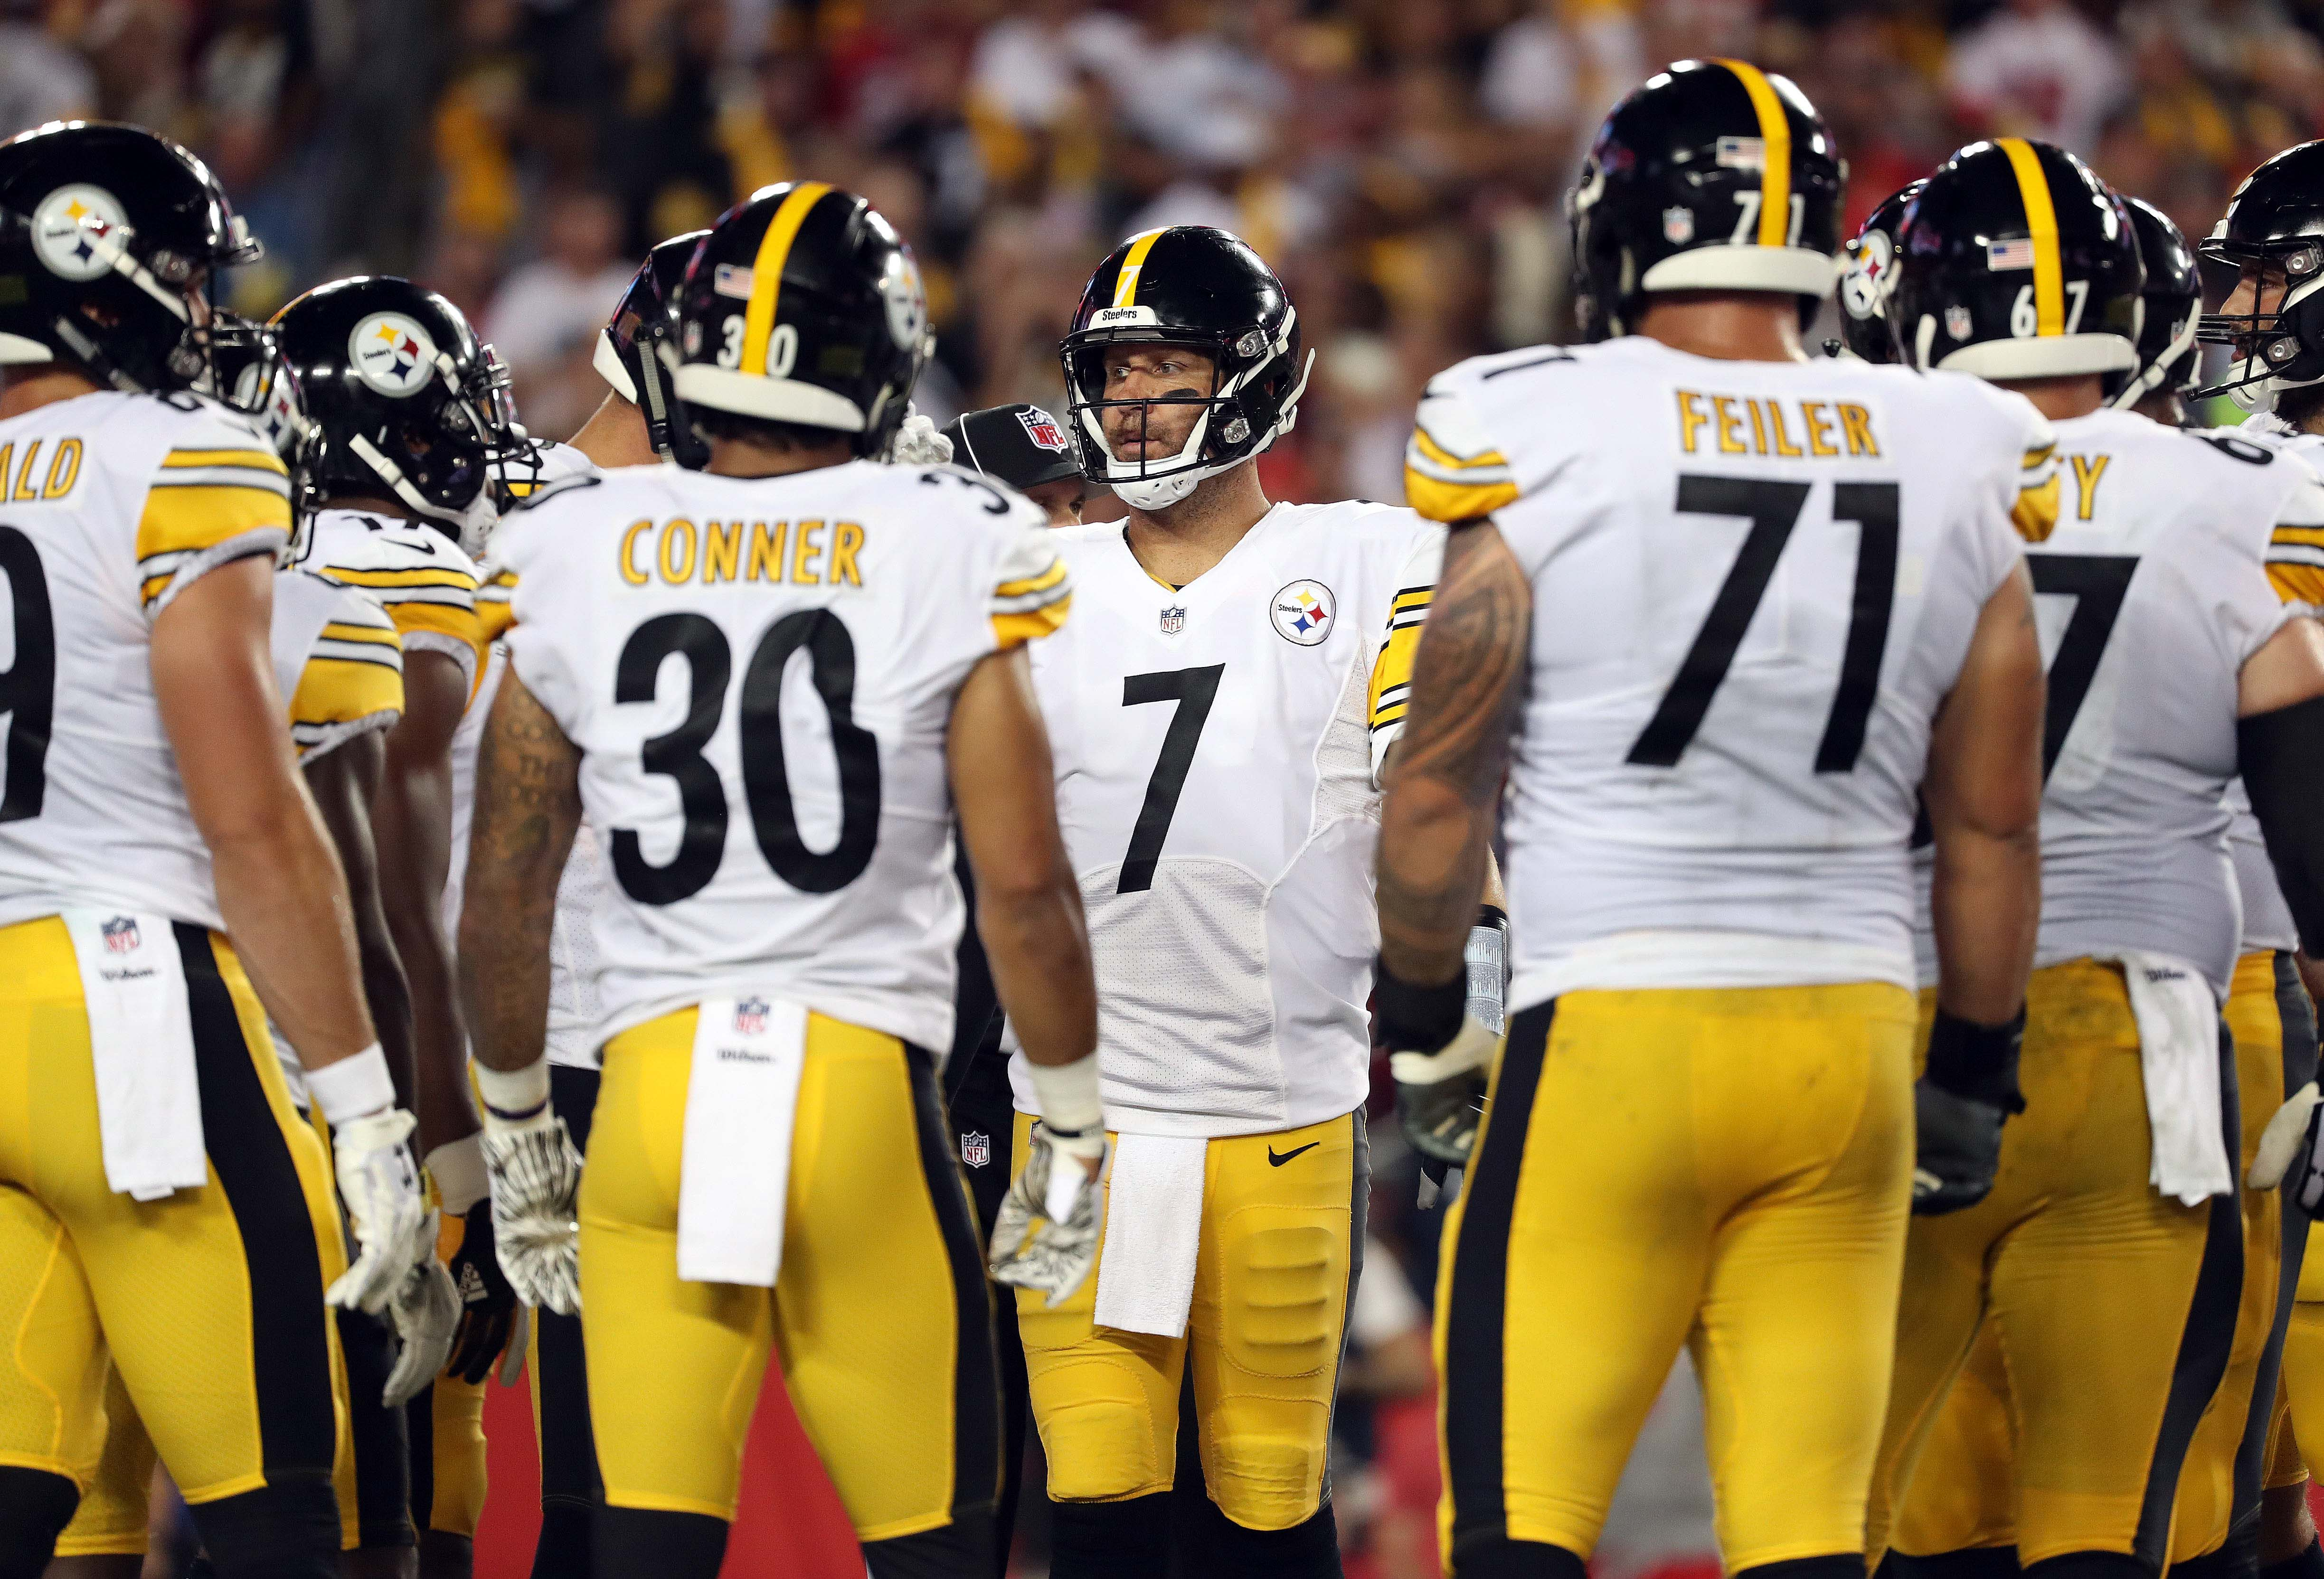 separation shoes da5b7 5f0d3 Getting to Know the Pittsburgh Steelers: My Favorite Players ...